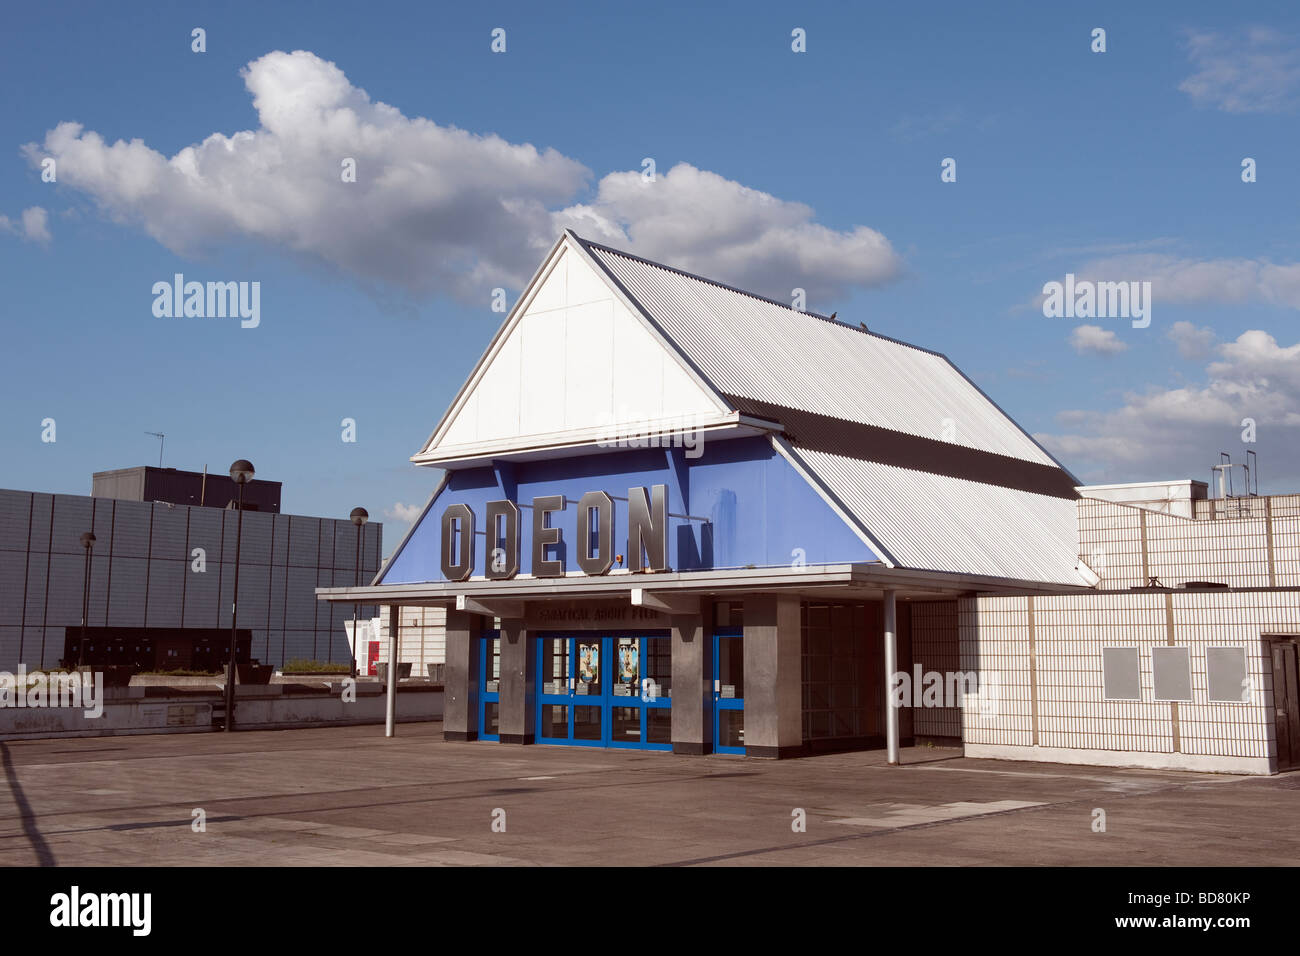 The 'Odeon Cinema' entrance in Sheffield,England,'Great Britain','United Kingdom',GB,UK,EU - Stock Image